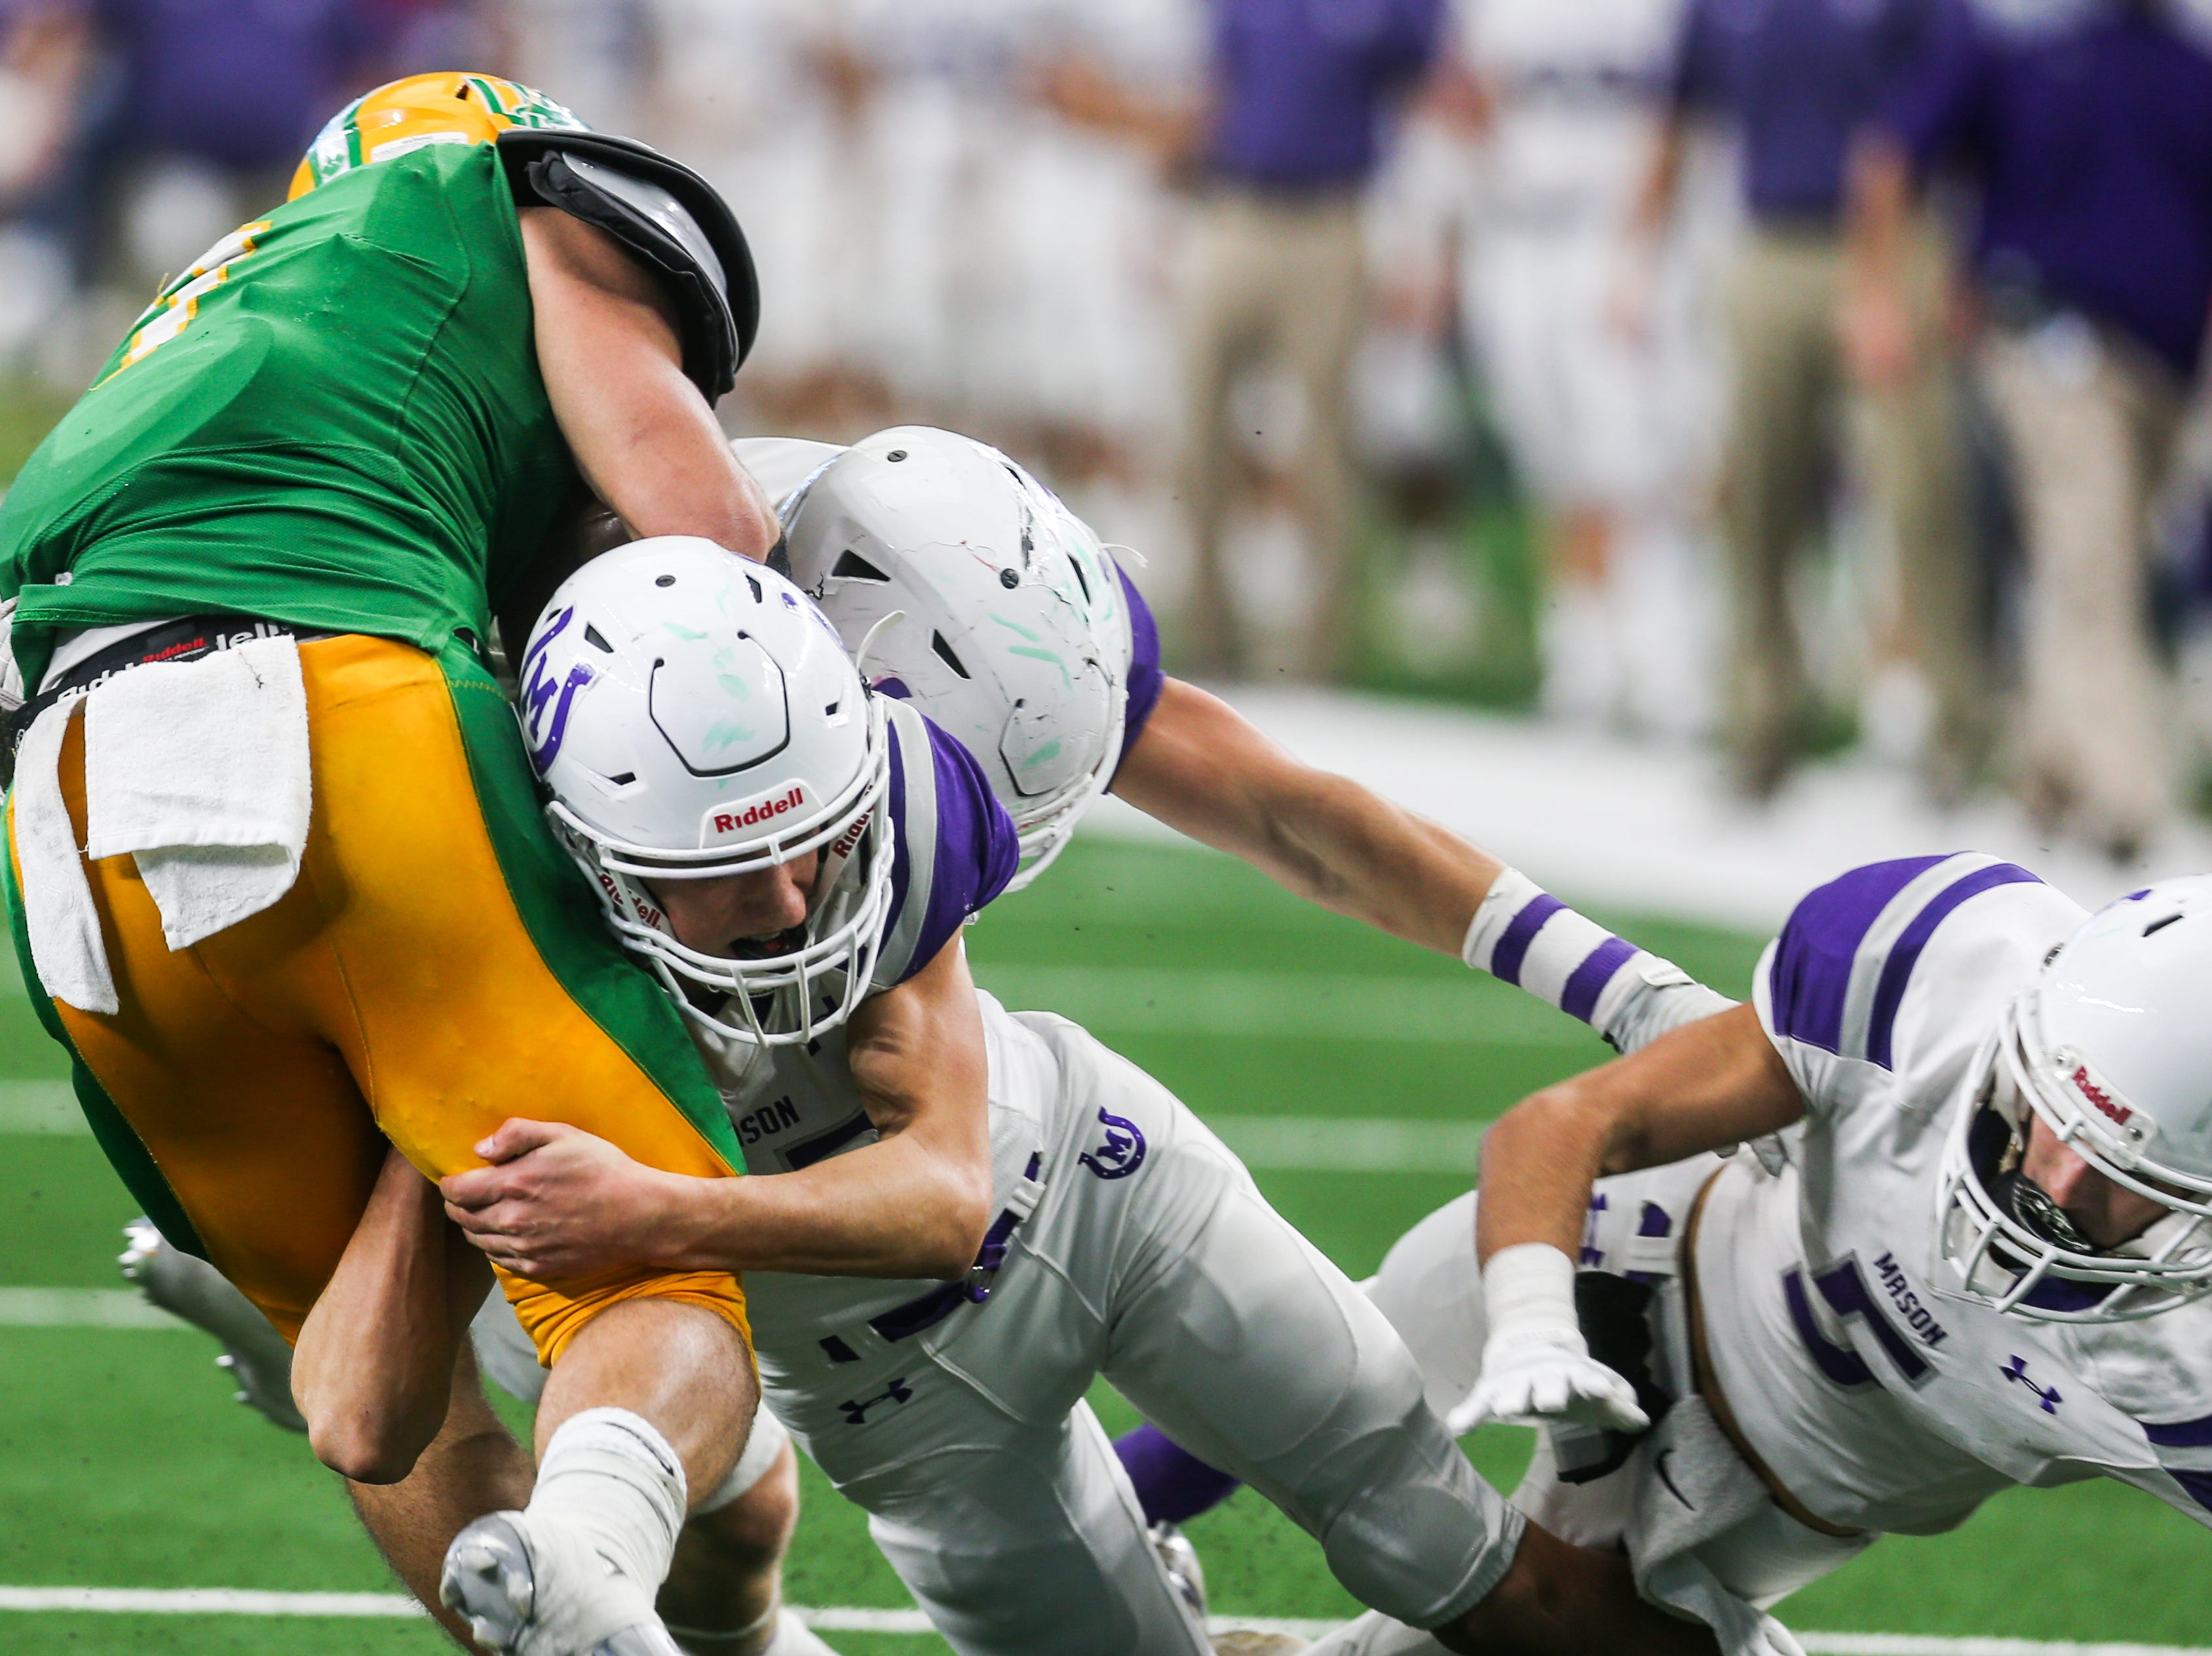 Mason defense tackle New Deal ball carrier during the state finals game against New Deal Thursday, Dec. 20, at the AT&T Stadium.